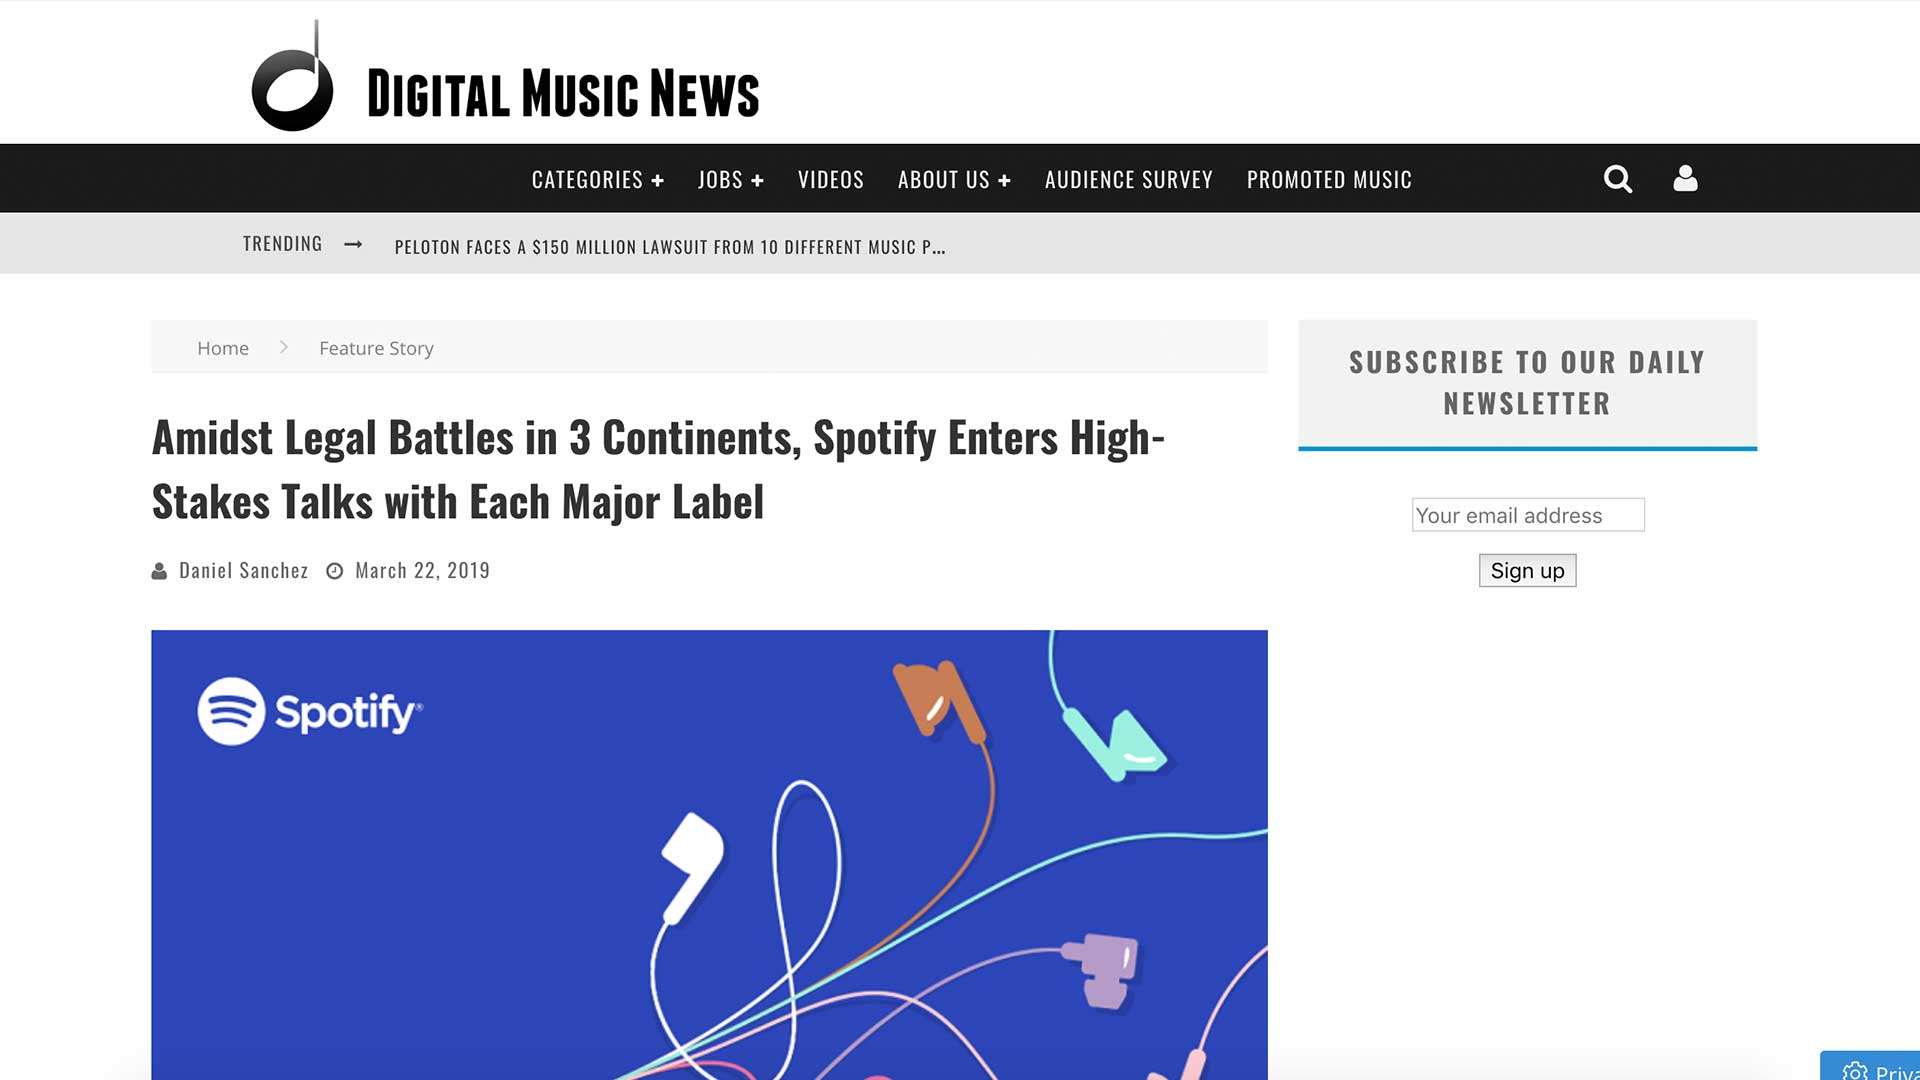 Fairness Rocks News Amidst Legal Battles in 3 Continents, Spotify Enters High-Stakes Talks with Each Major Label